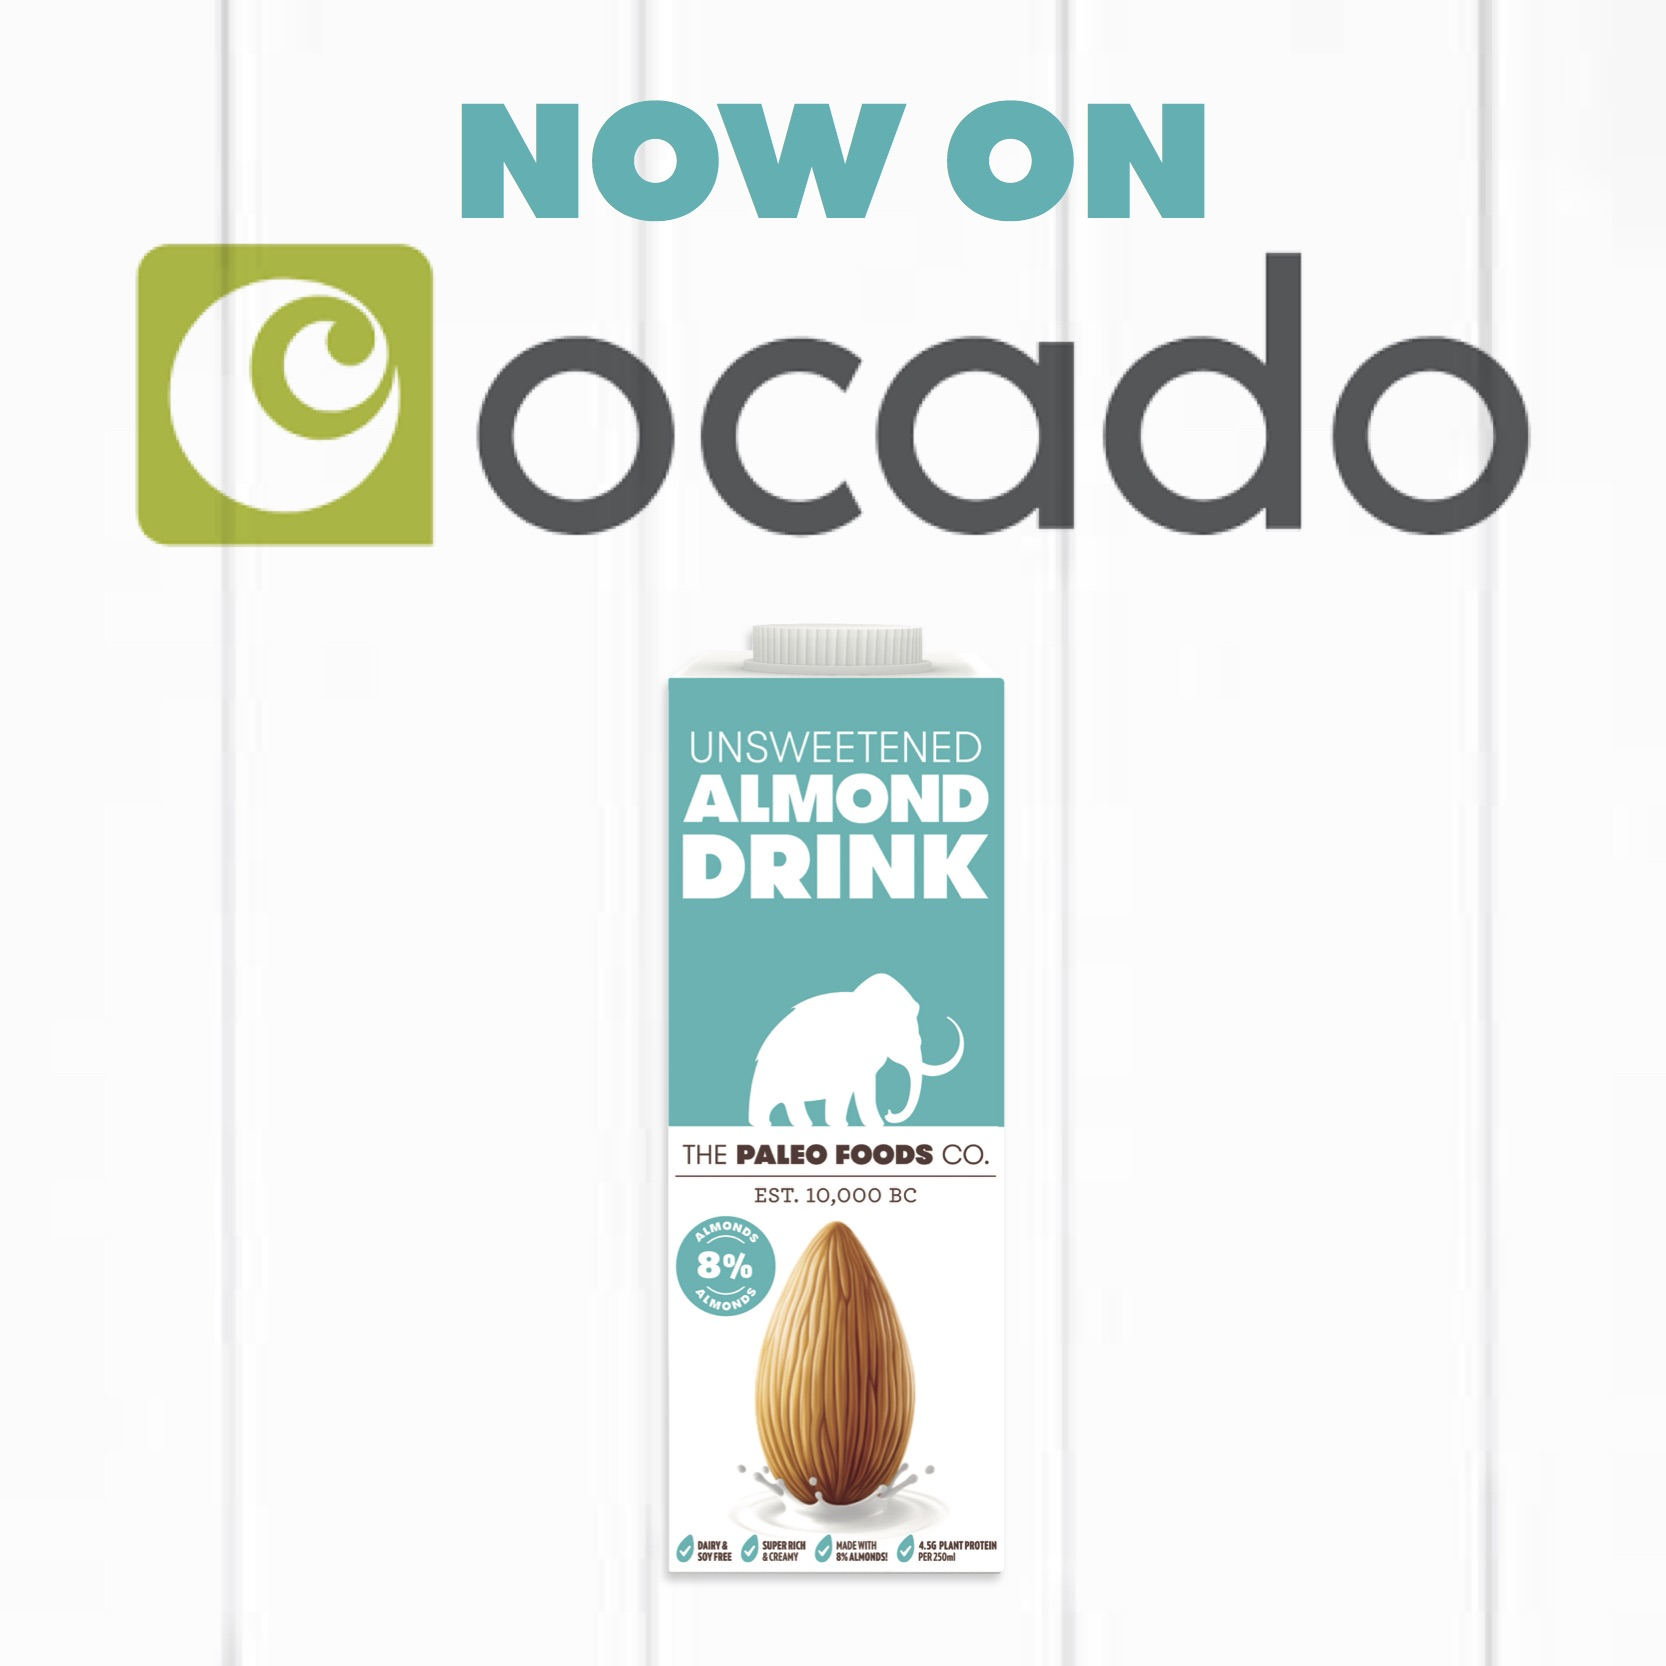 Now on Ocado_logo.jpg